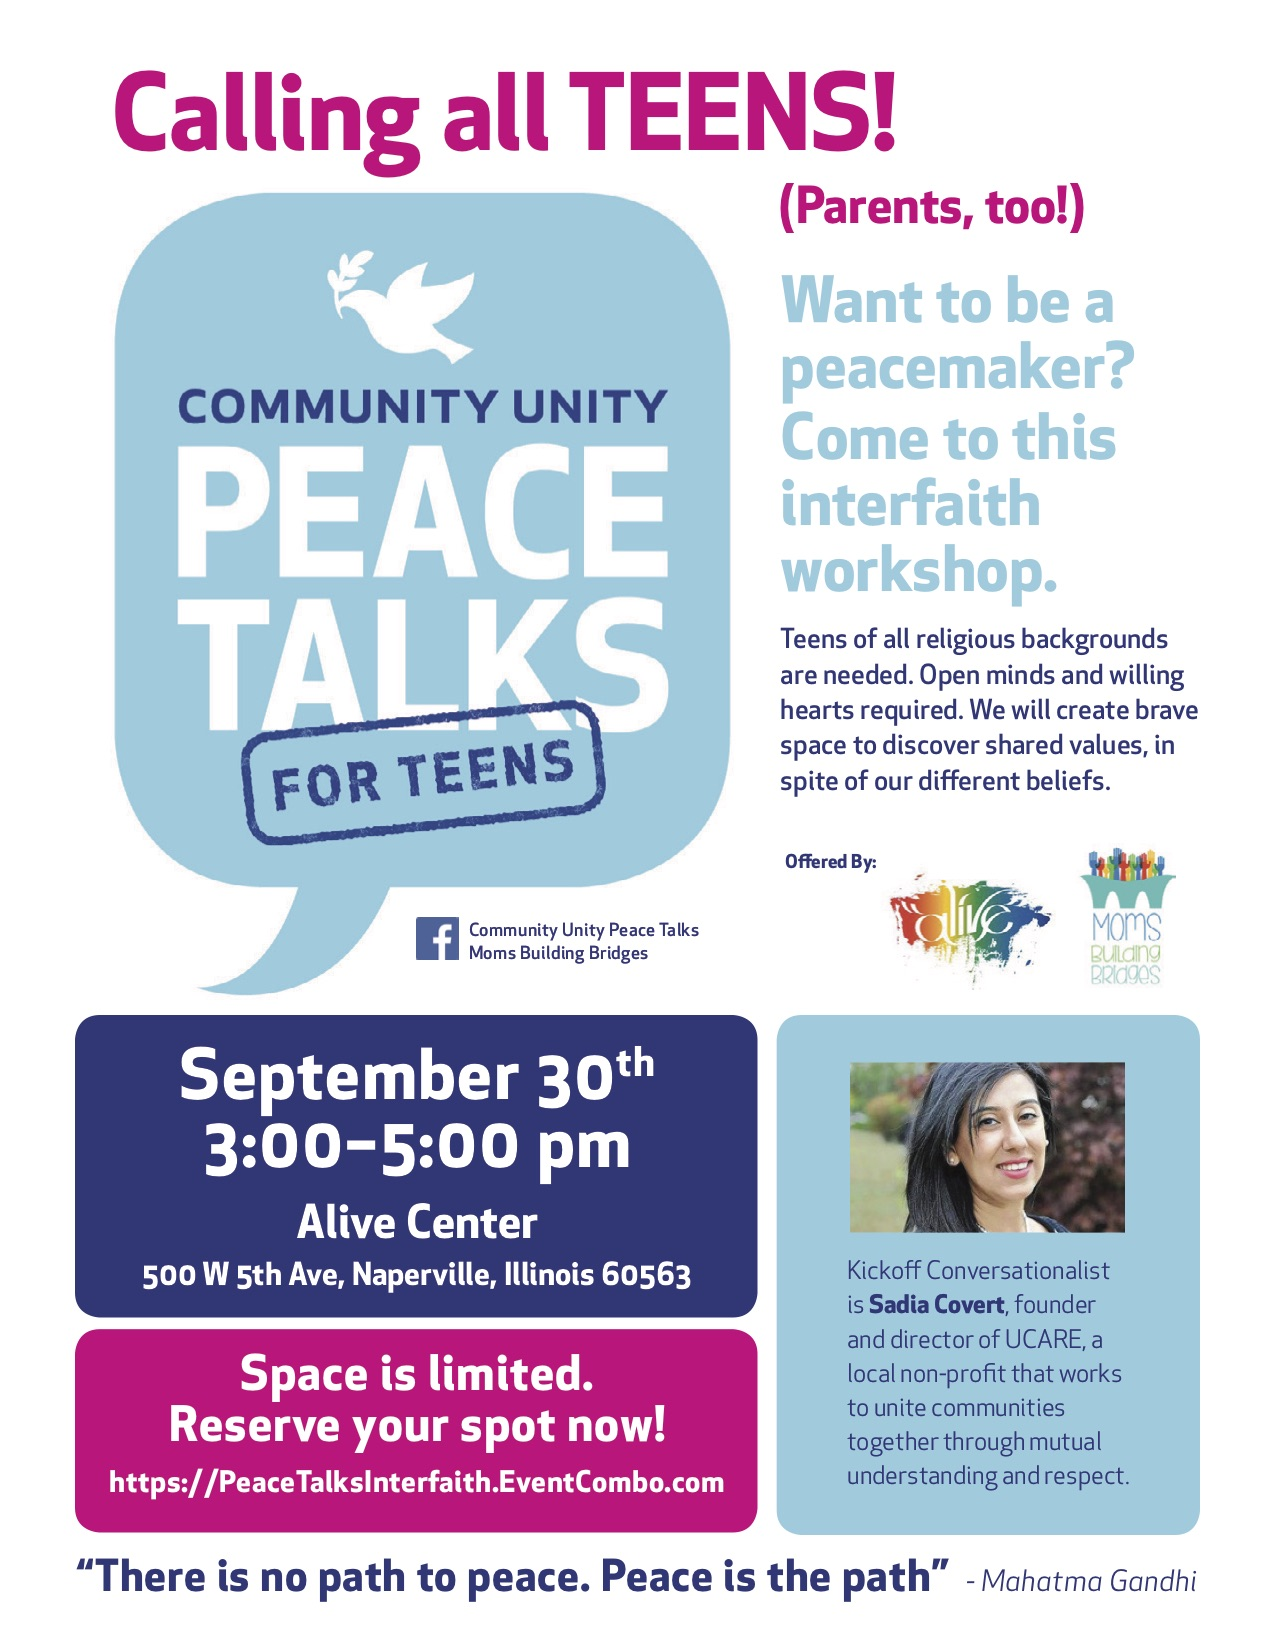 COMMUNITY UNITY PEACE TALKS for TEENS:  An Interfaith Workshop